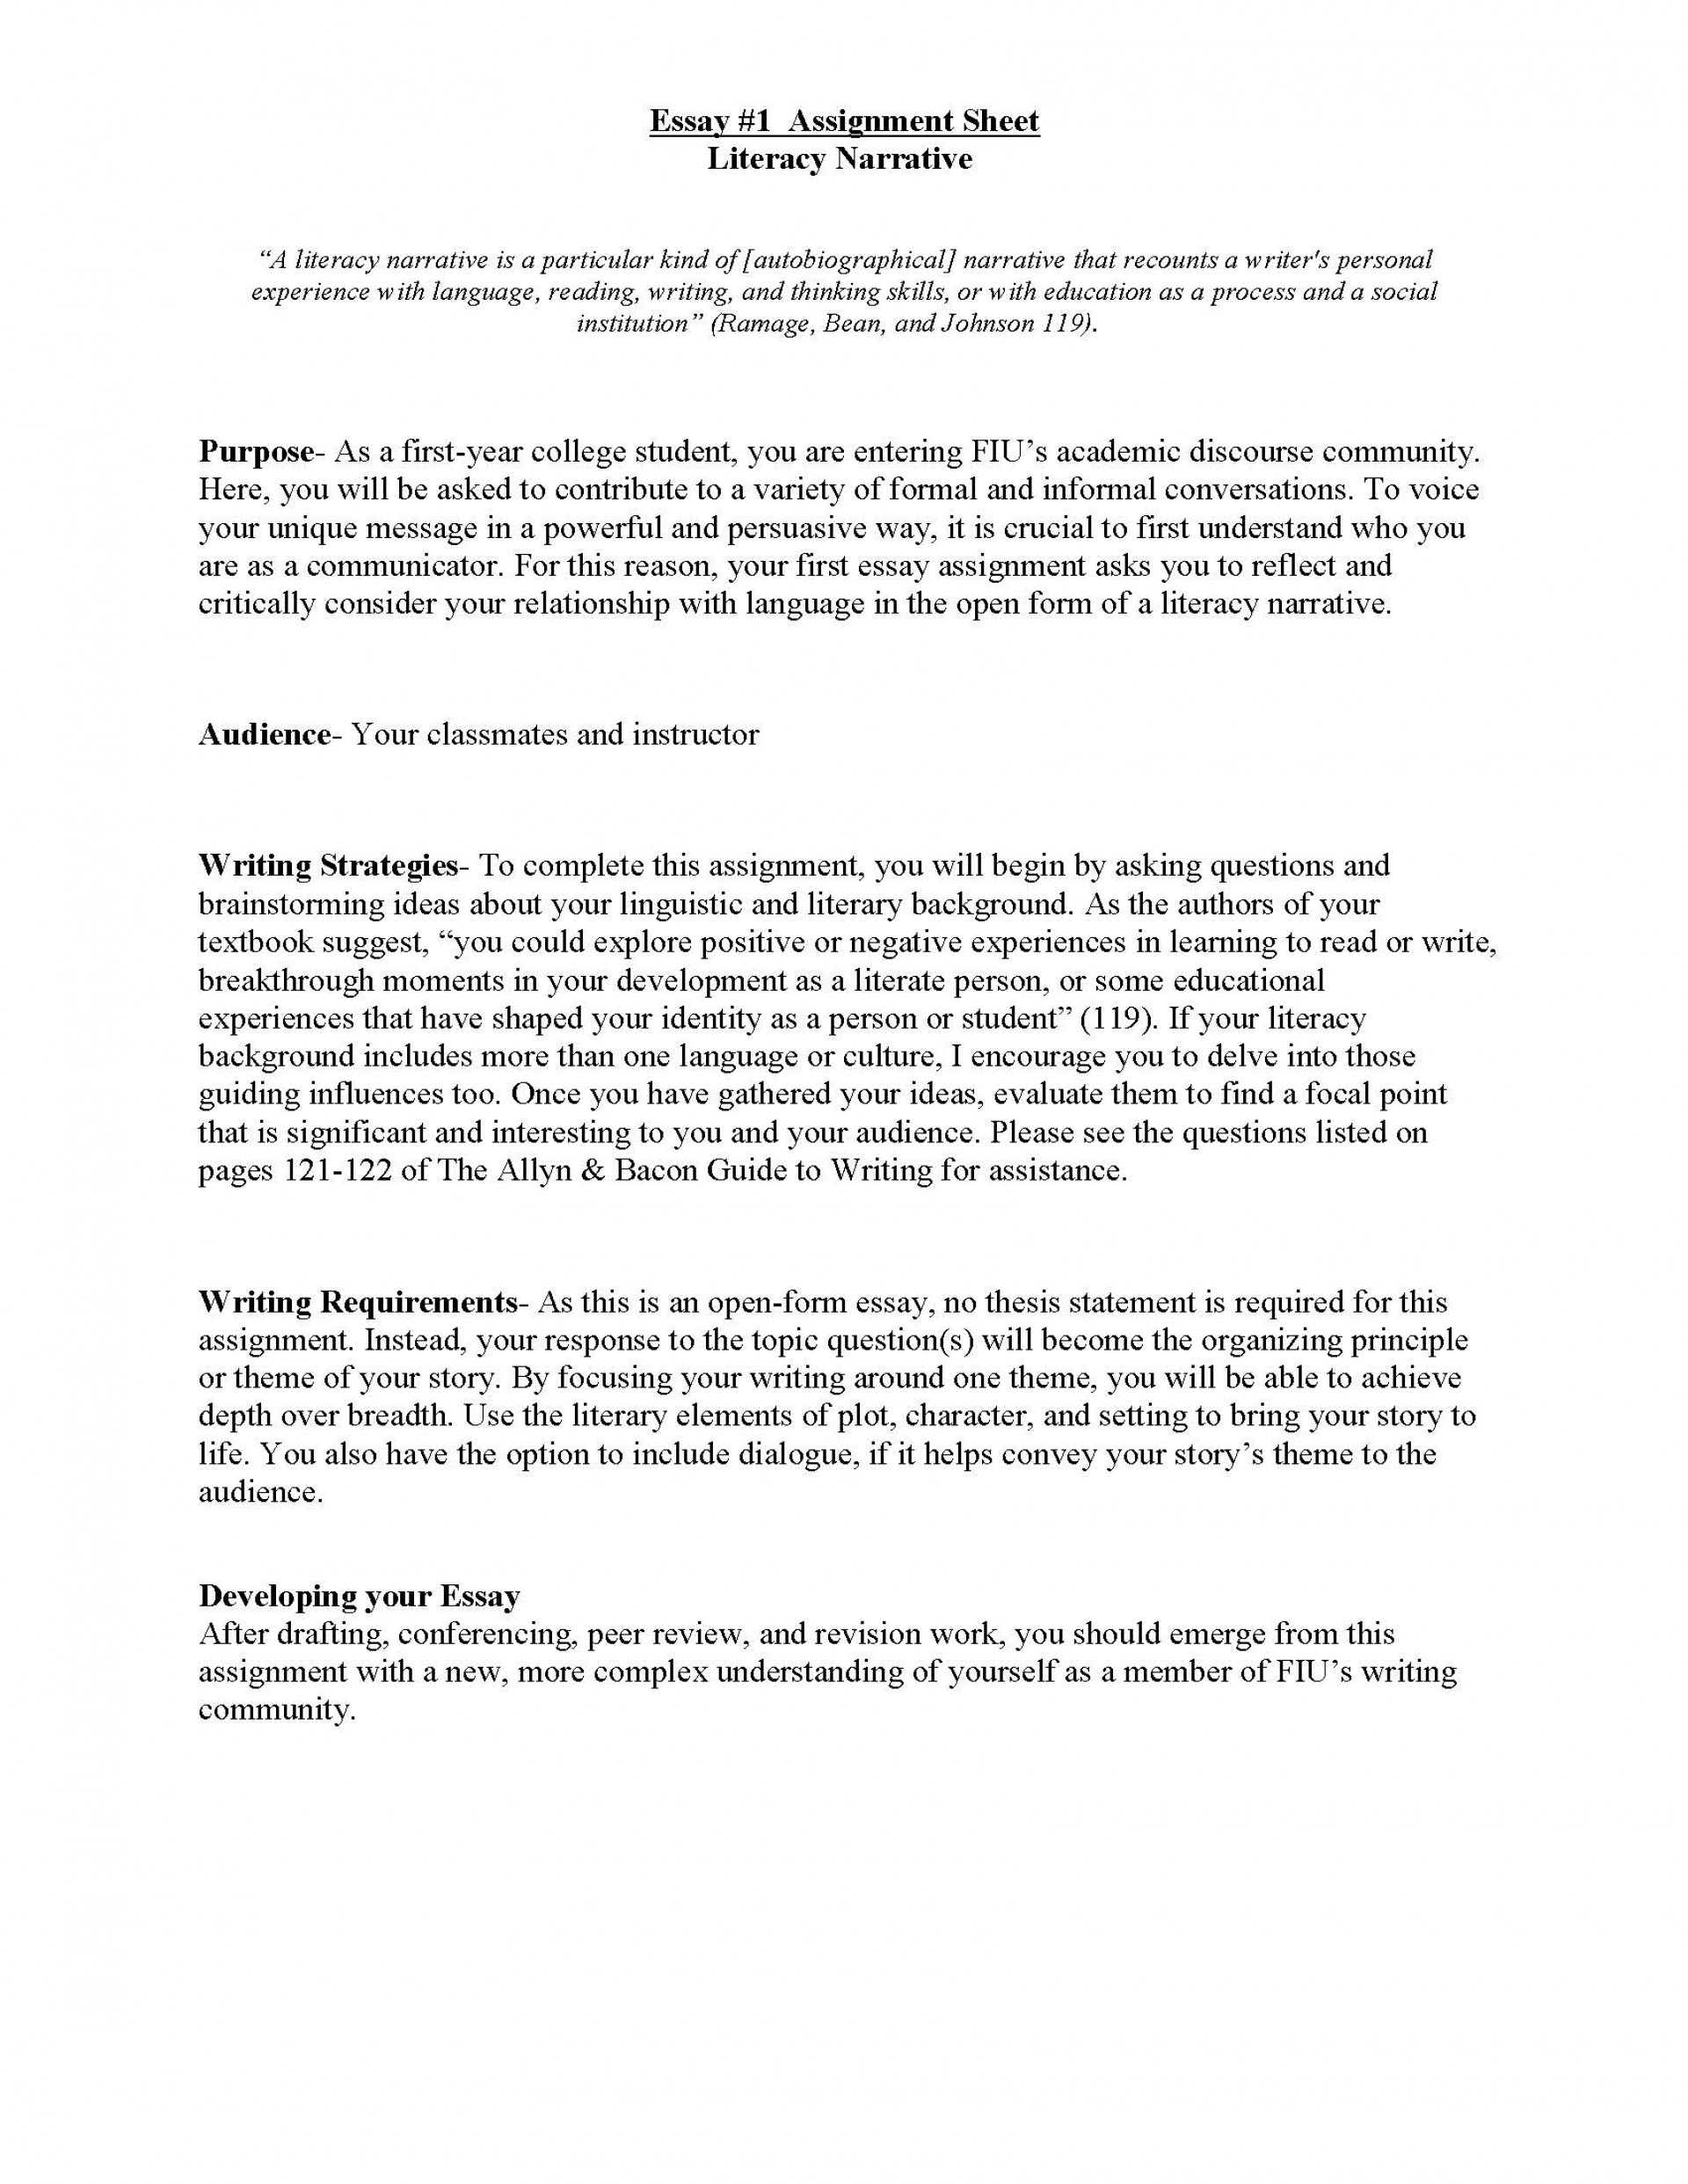 006 Personal Narrative Essays For Colleges Literacy Unit Assignment Spring 2012 Page 1 Phenomenal Essay Examples 1920